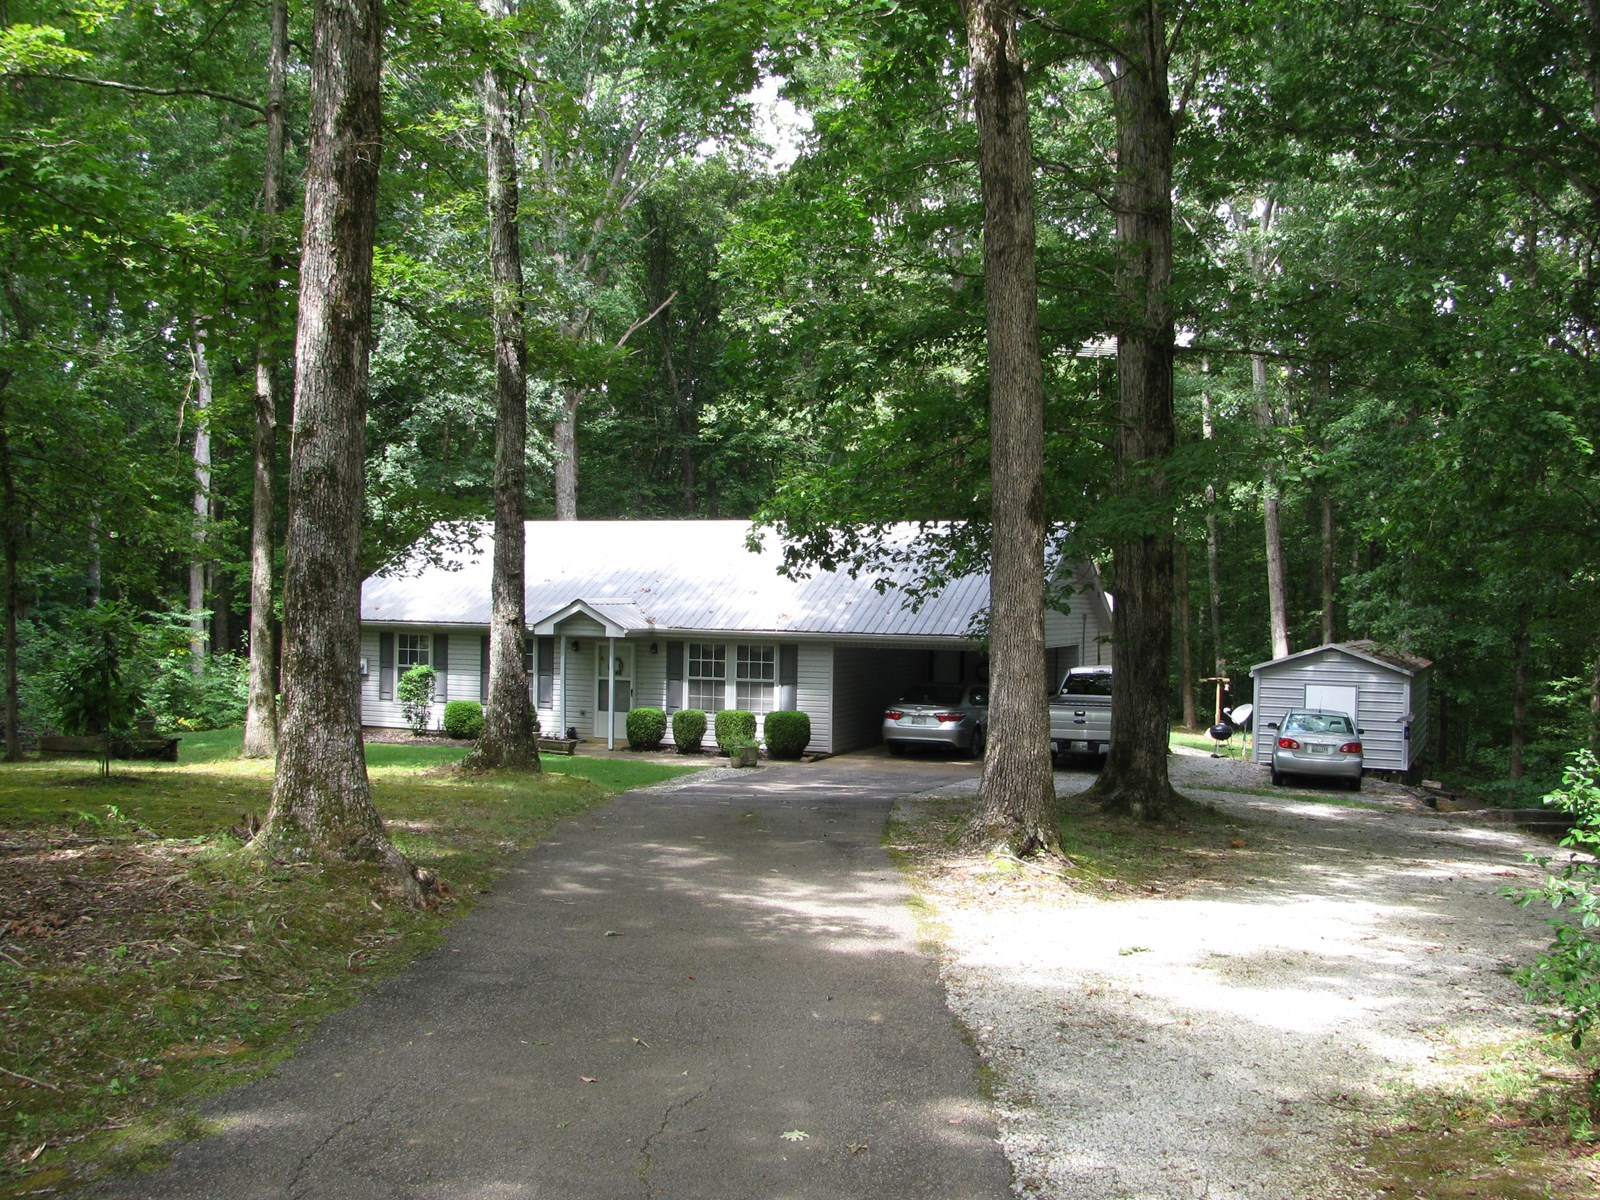 COUNTRY HOME FOR SALE IN TN WITH ACREAGE & NO RESTRICTIONS